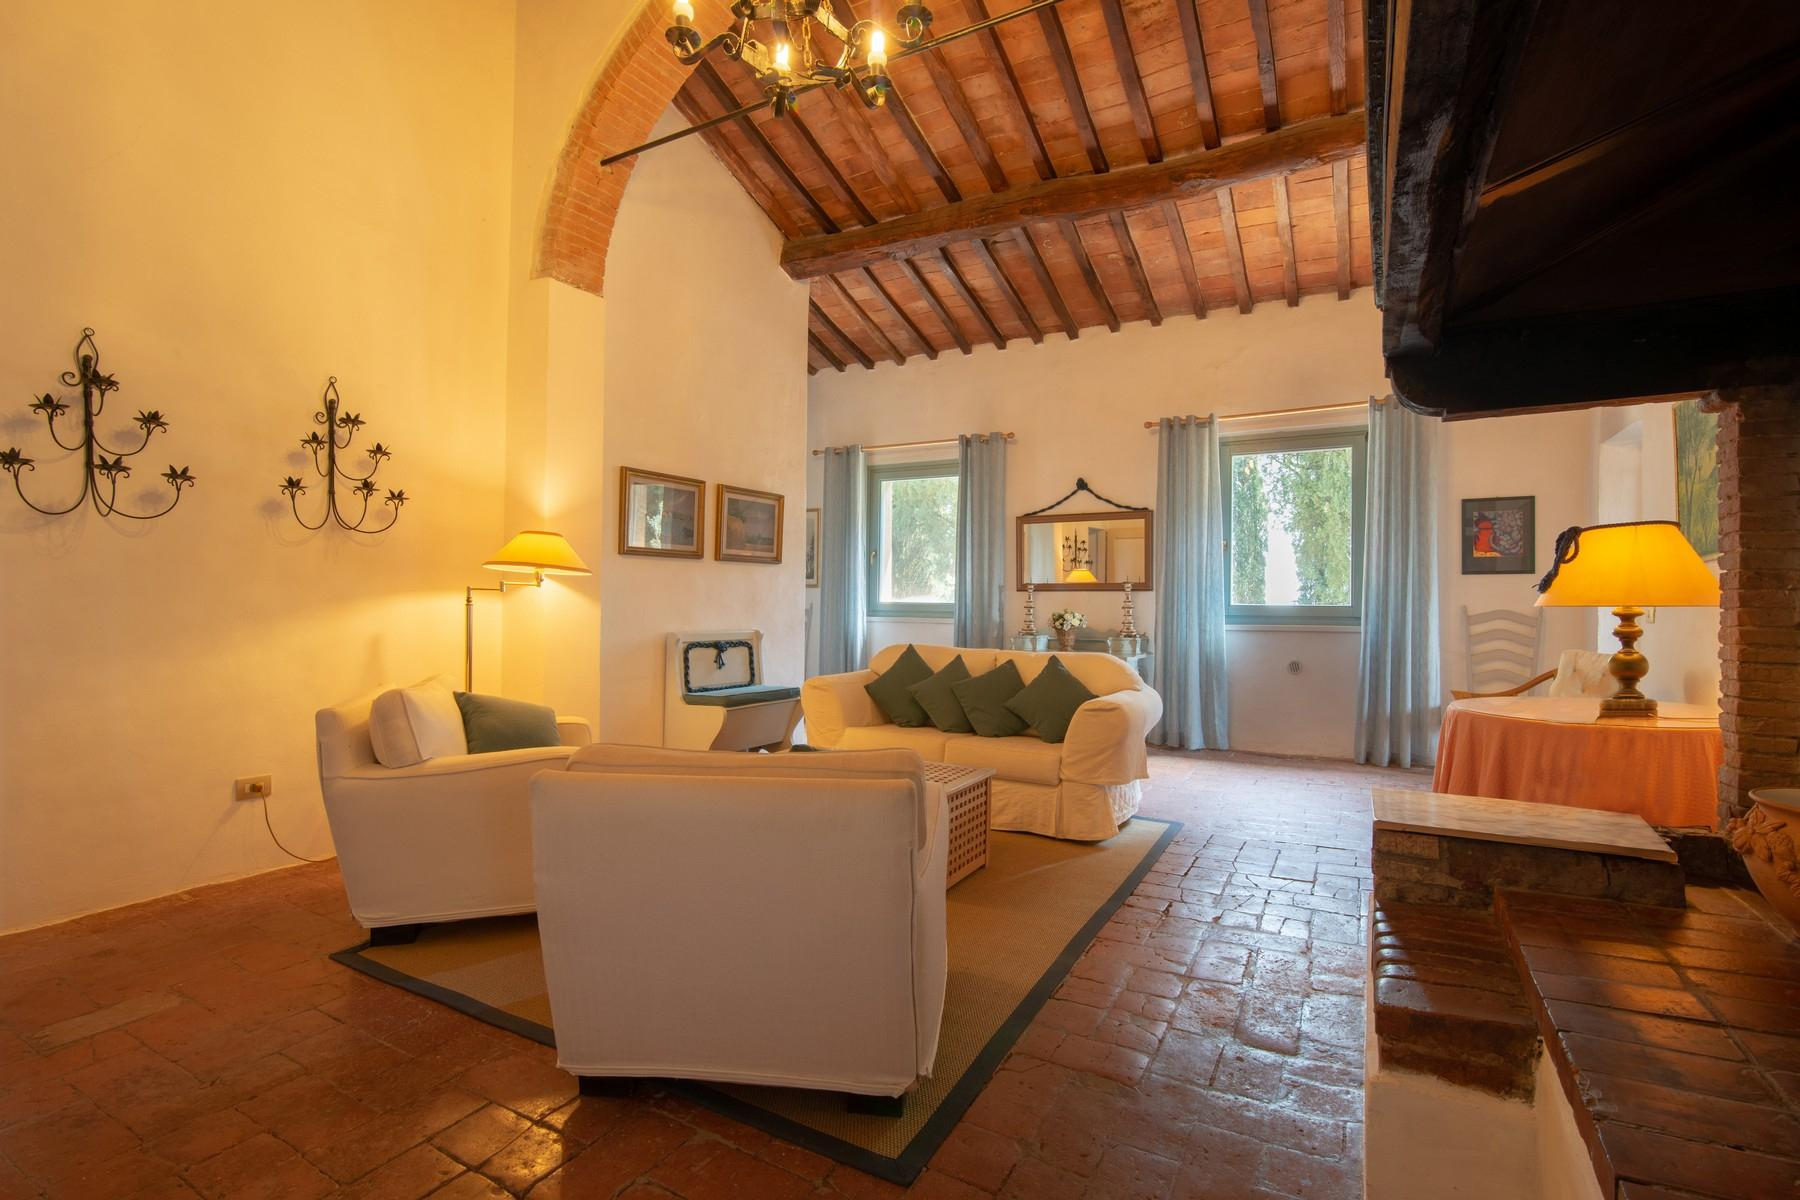 Remarkable Country house B&B with pool near San Gimignano - 6